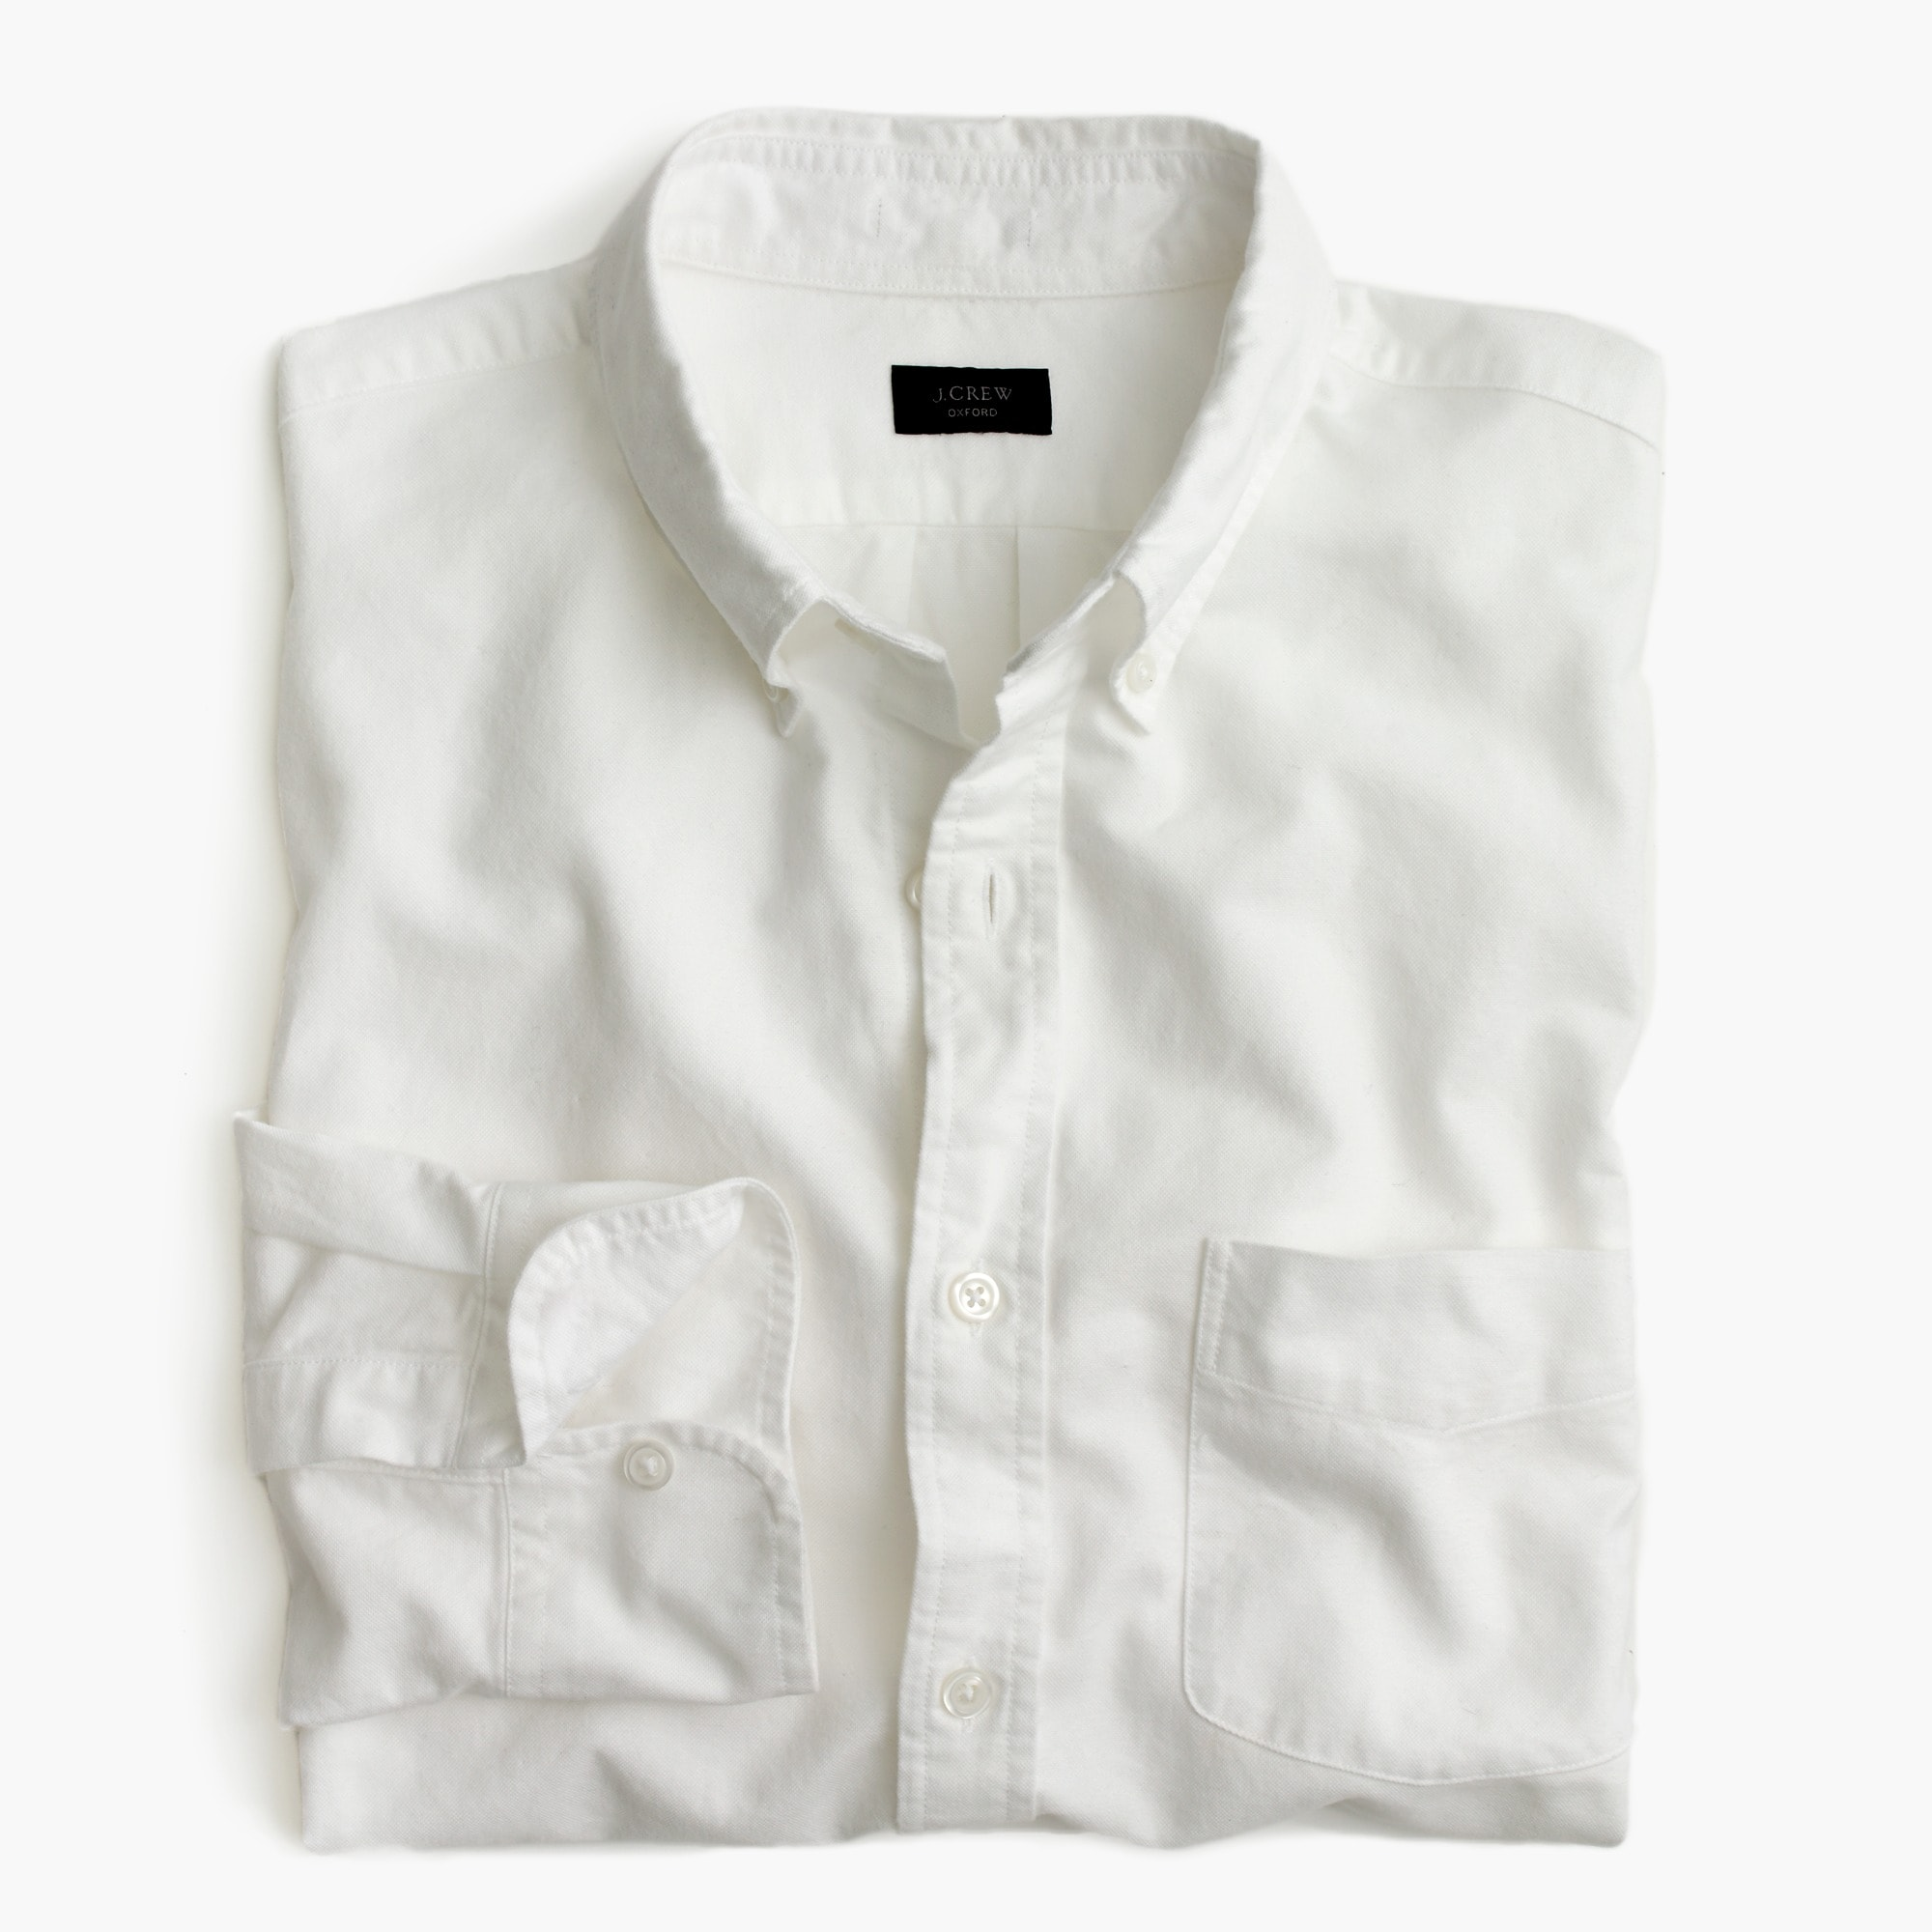 Vintage oxford shirt in white